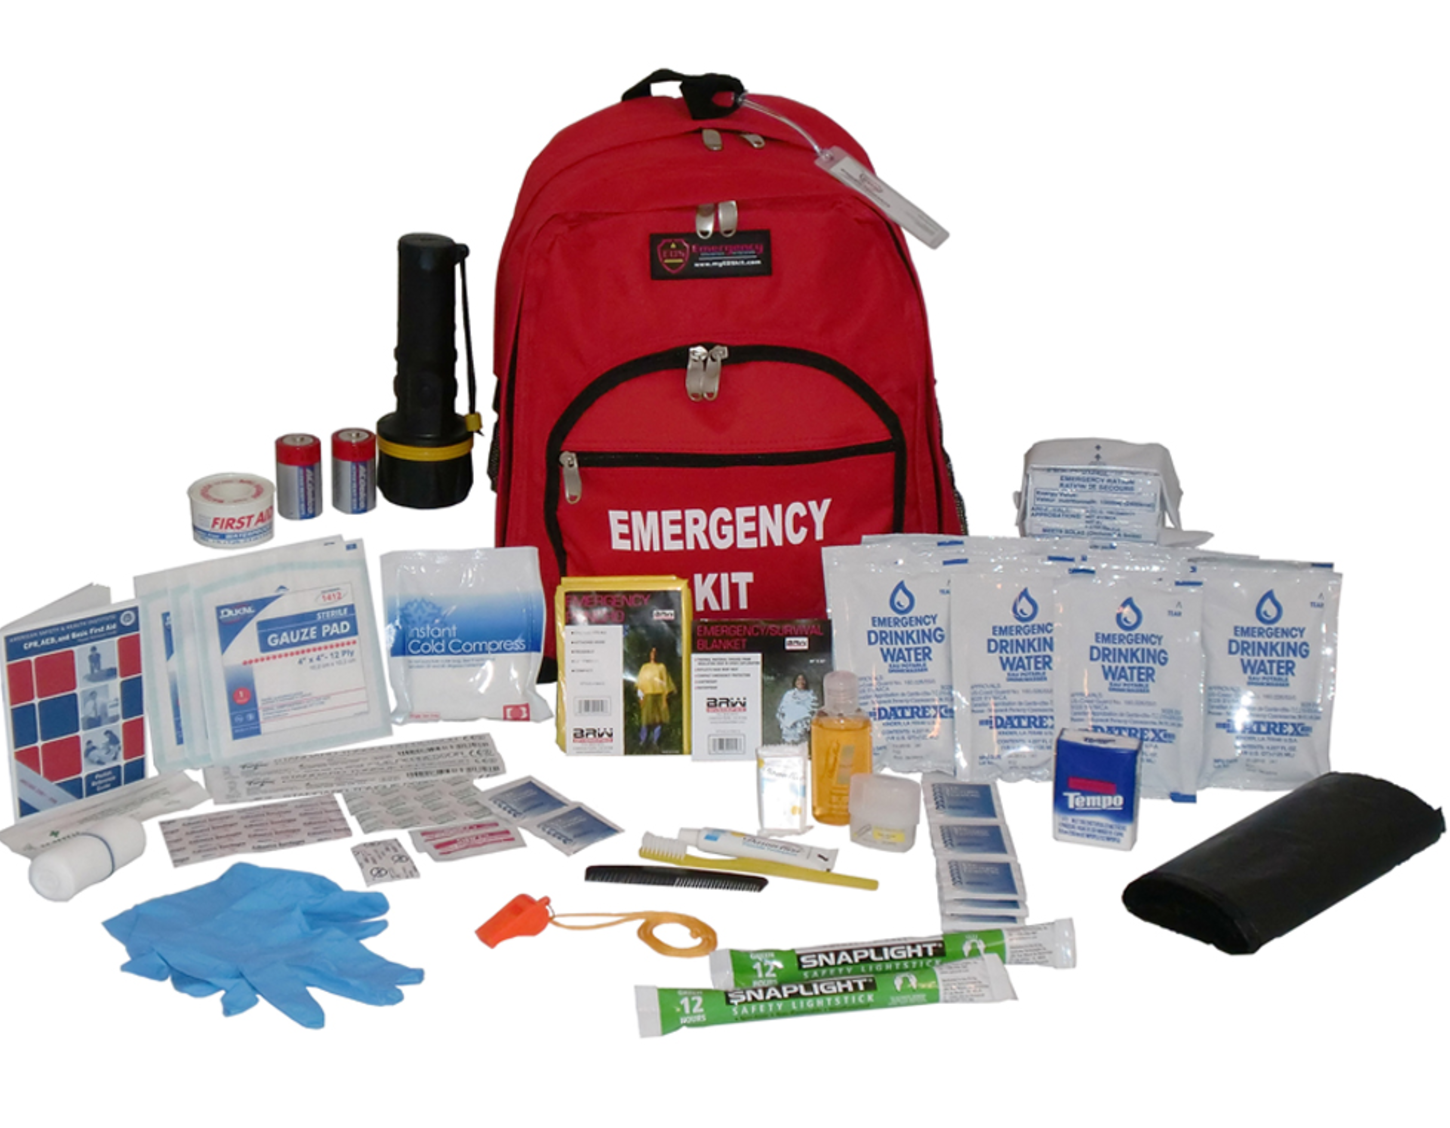 plumbing emergency kits available